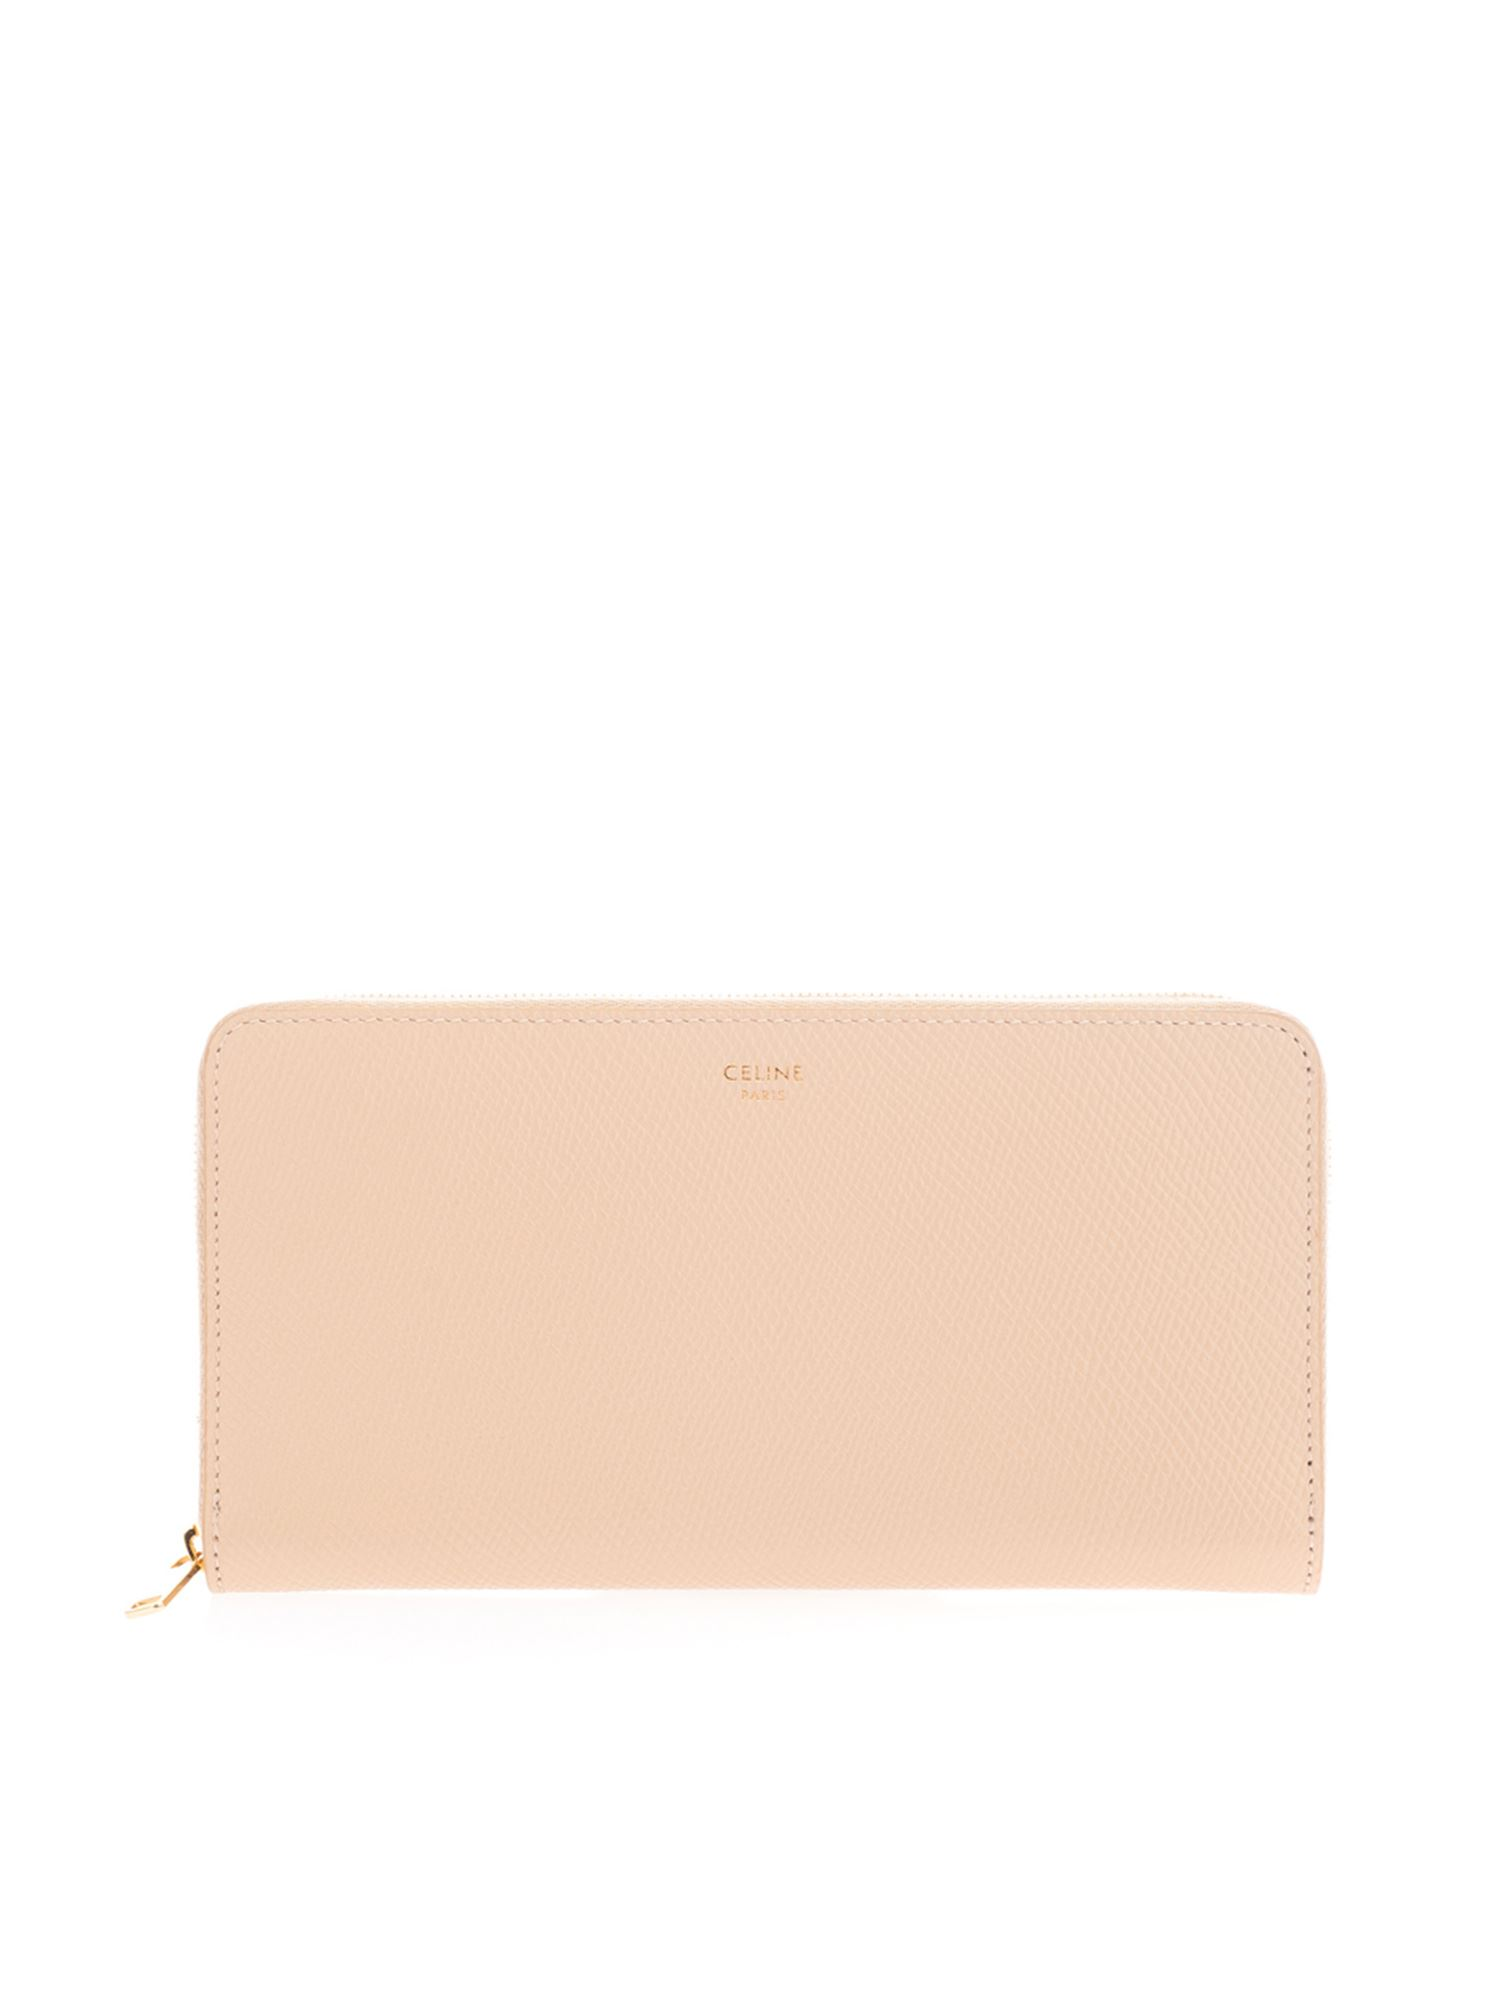 Celine LARGE ZIP WALLET IN NUDE COLOR